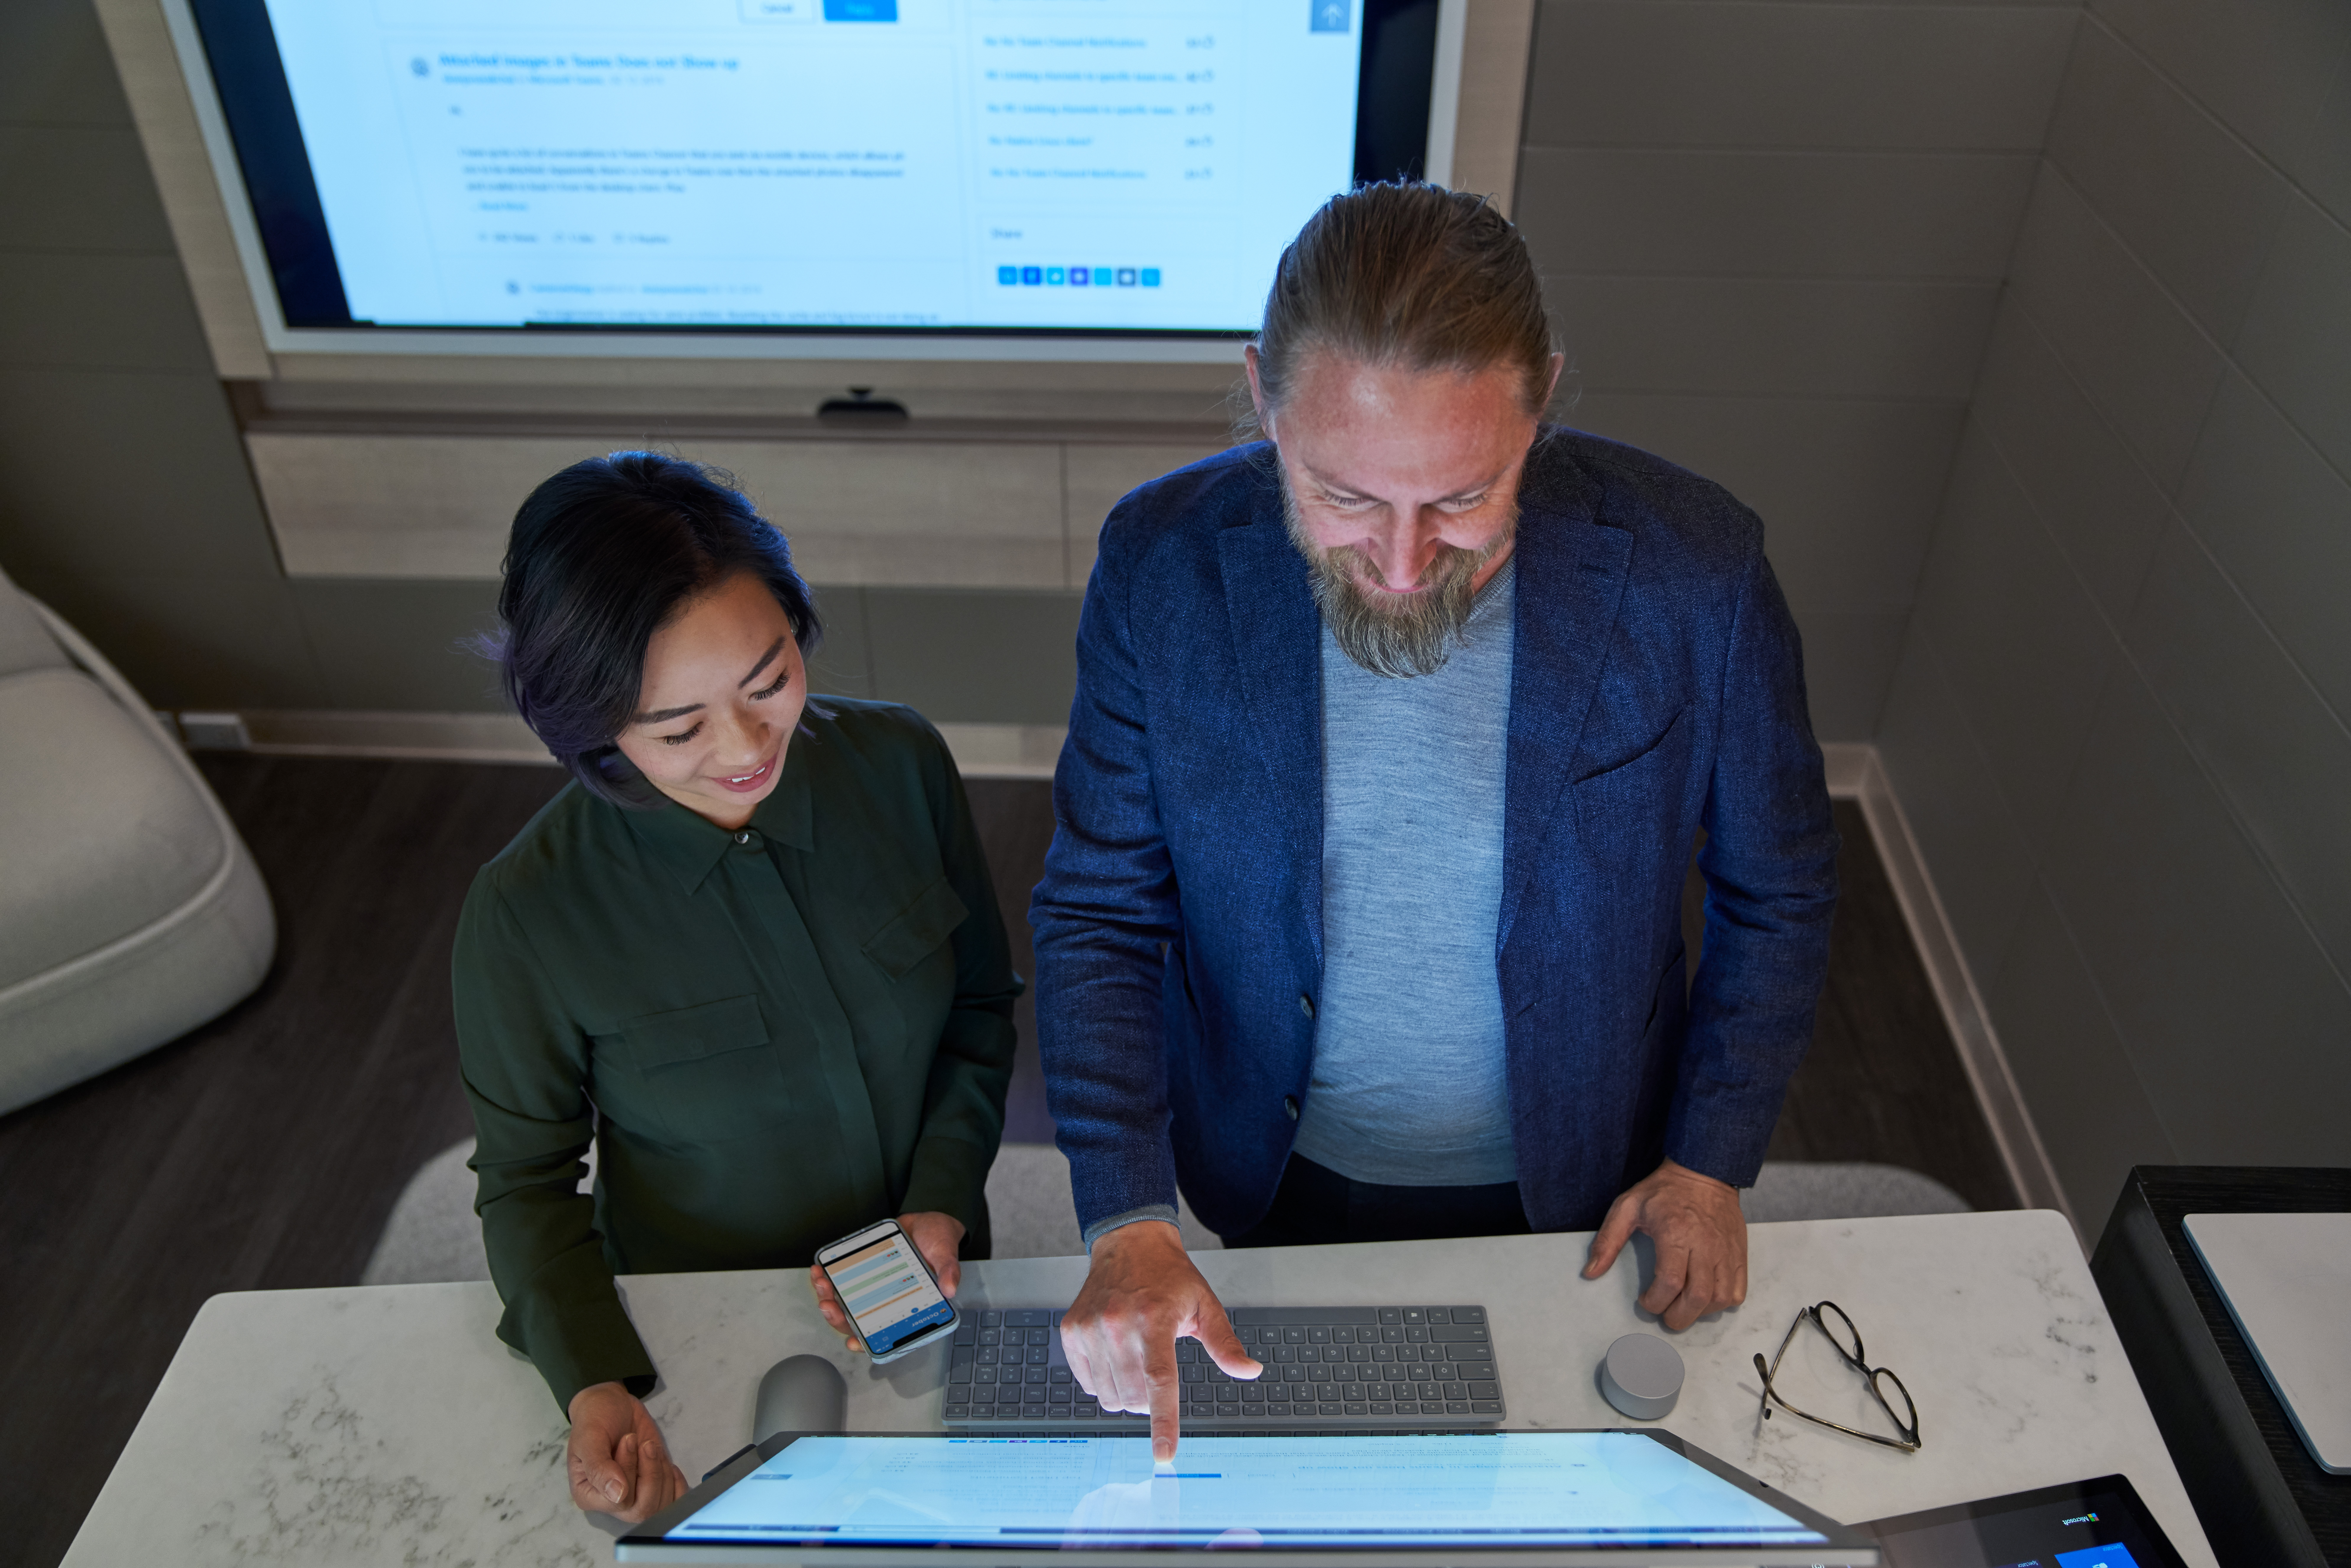 Top down view of a man and woman in a dim office collaborating or working on a Microsoft Surface Studio. She is holding a phone.